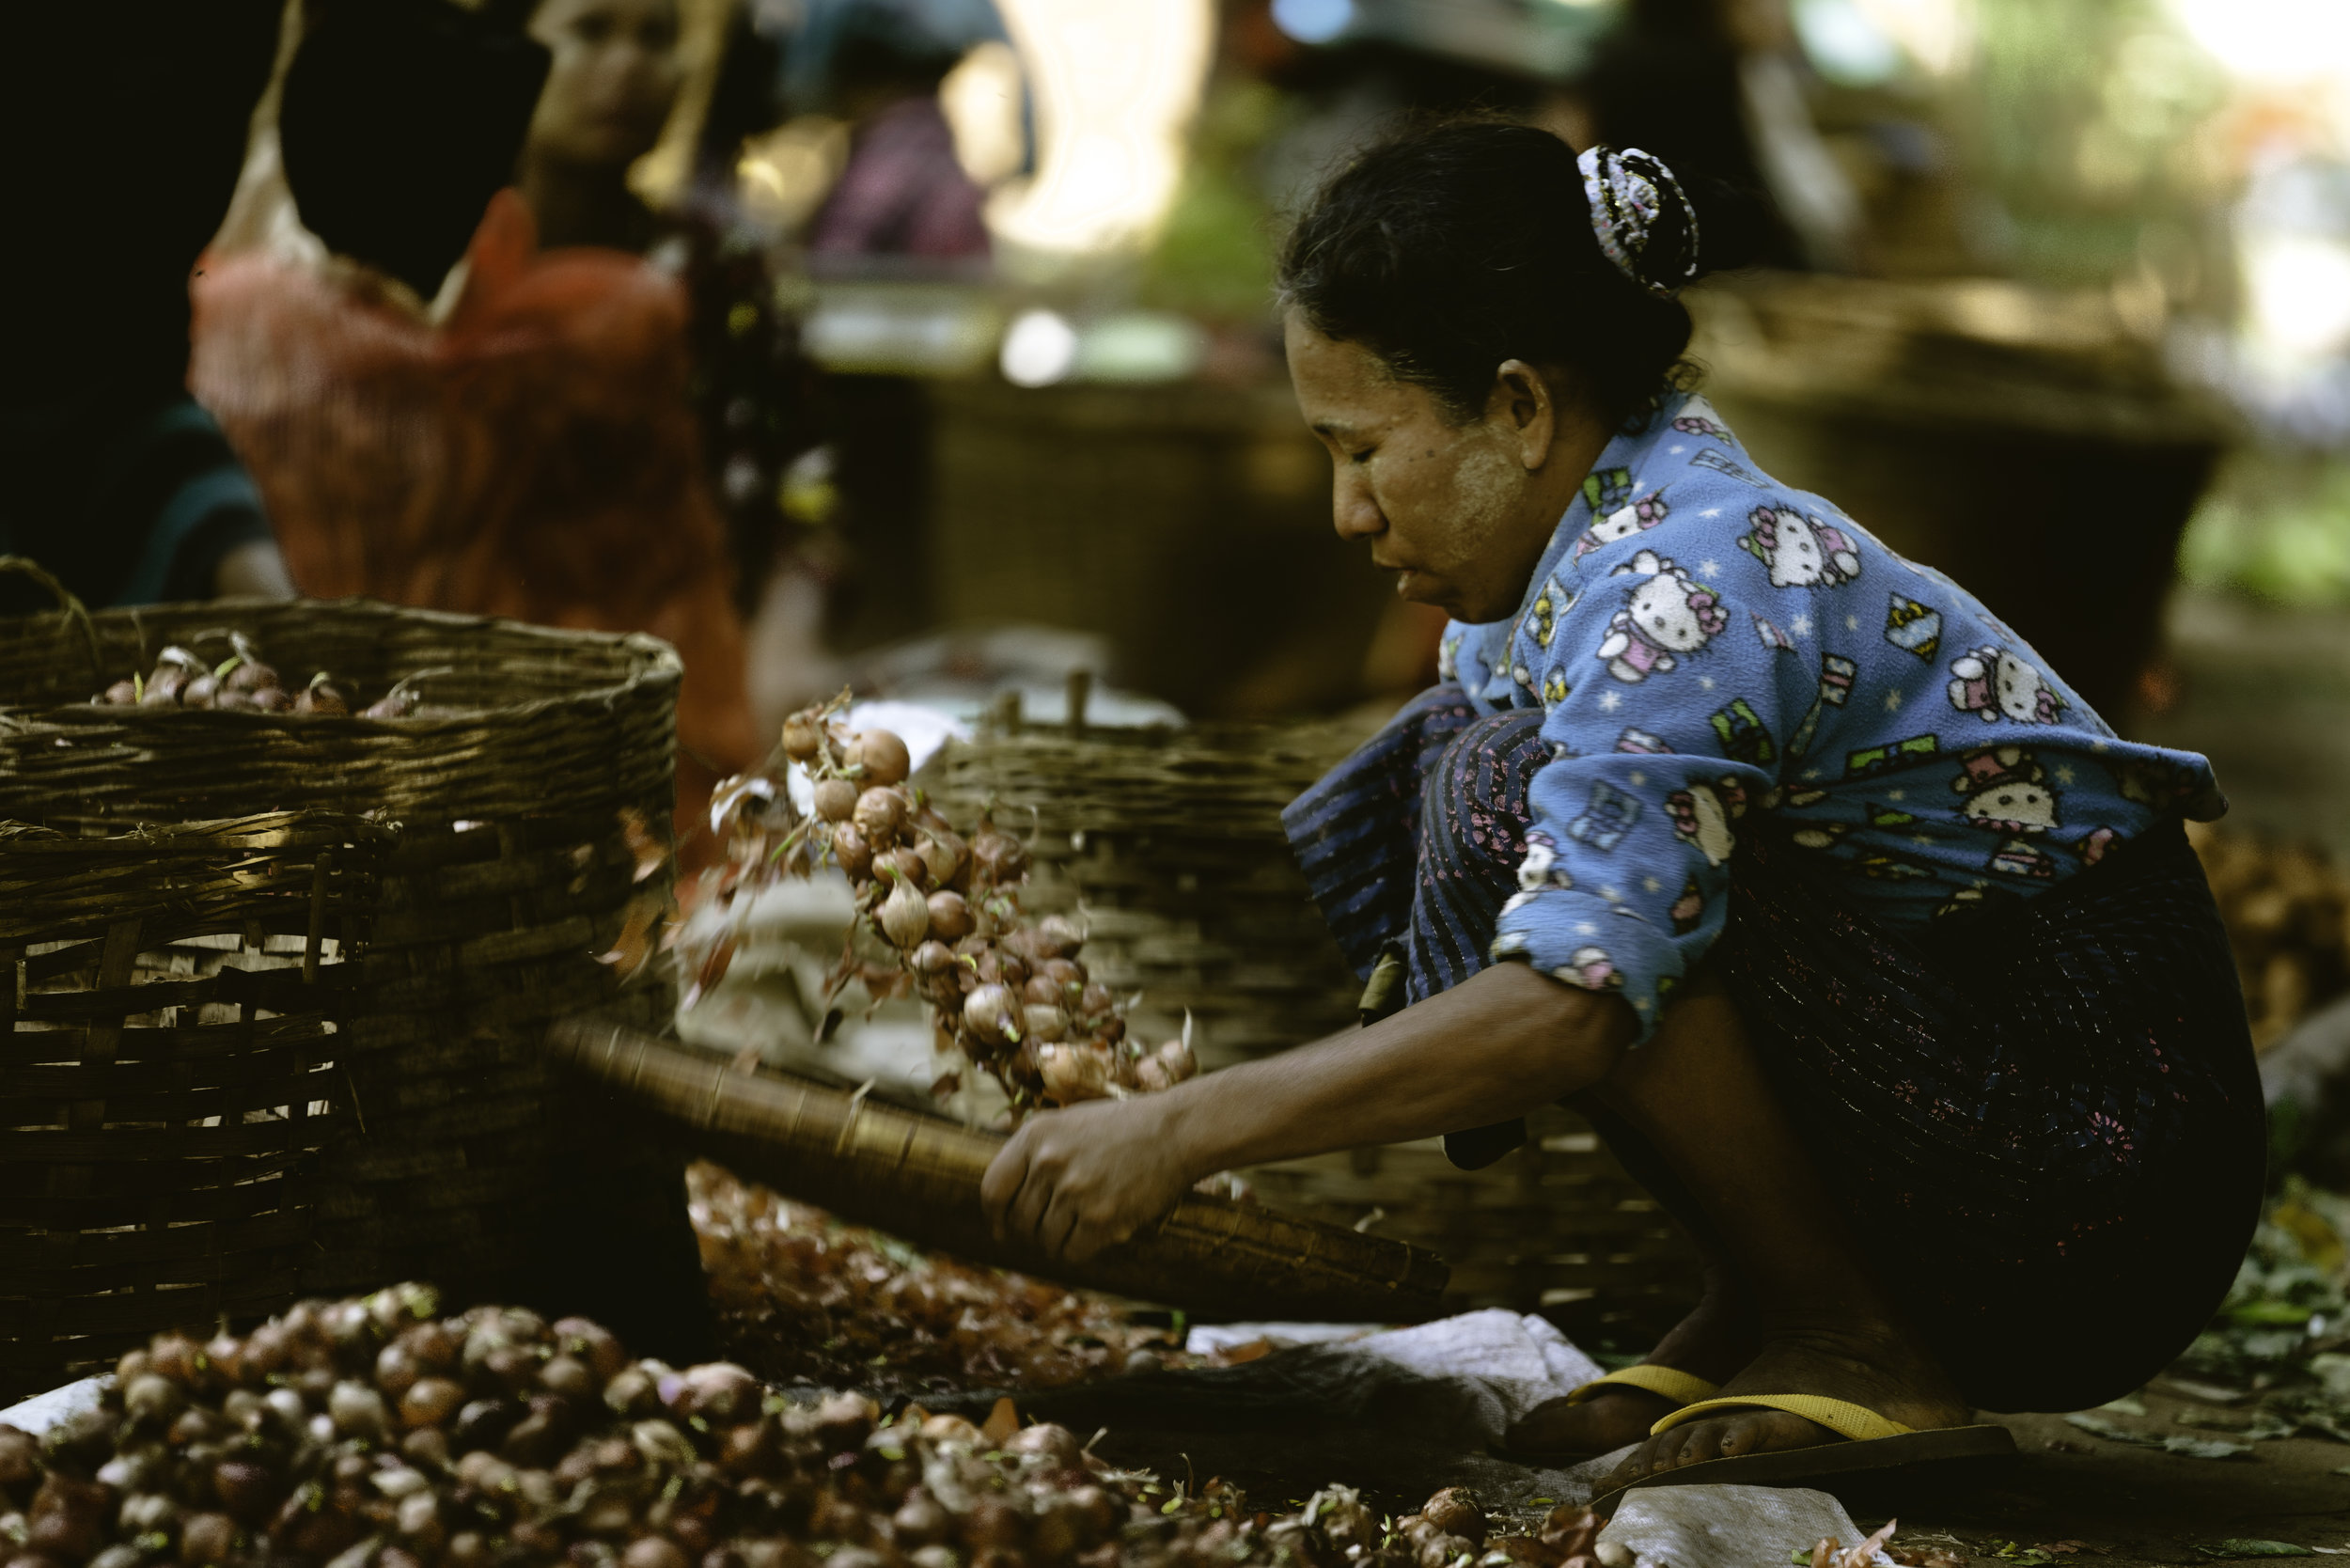 People of Bagan  A local vendor preparing red onions for sale.